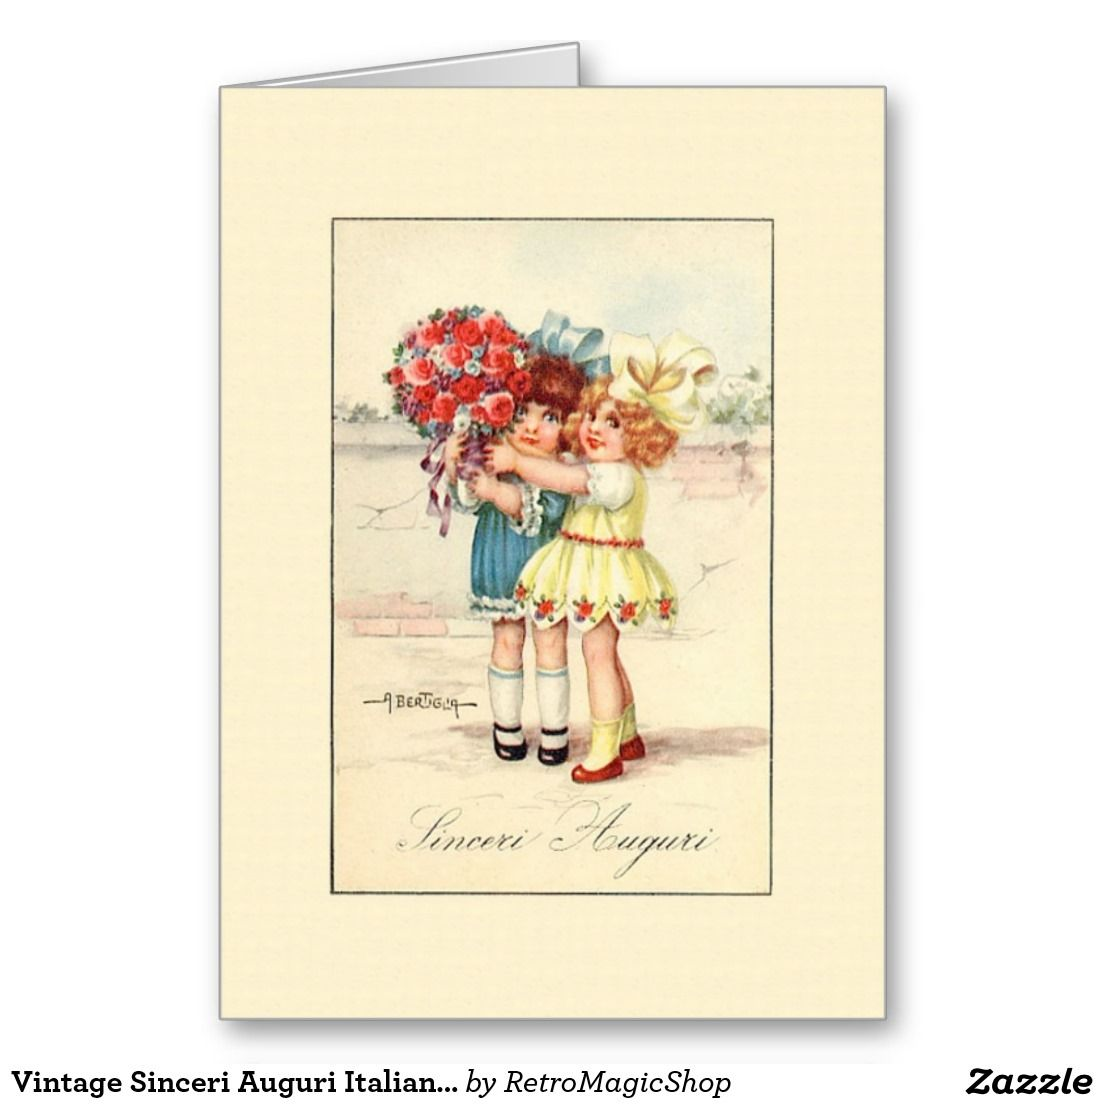 Vintage Sinceri Auguri Italian Birthday Card Vintage International